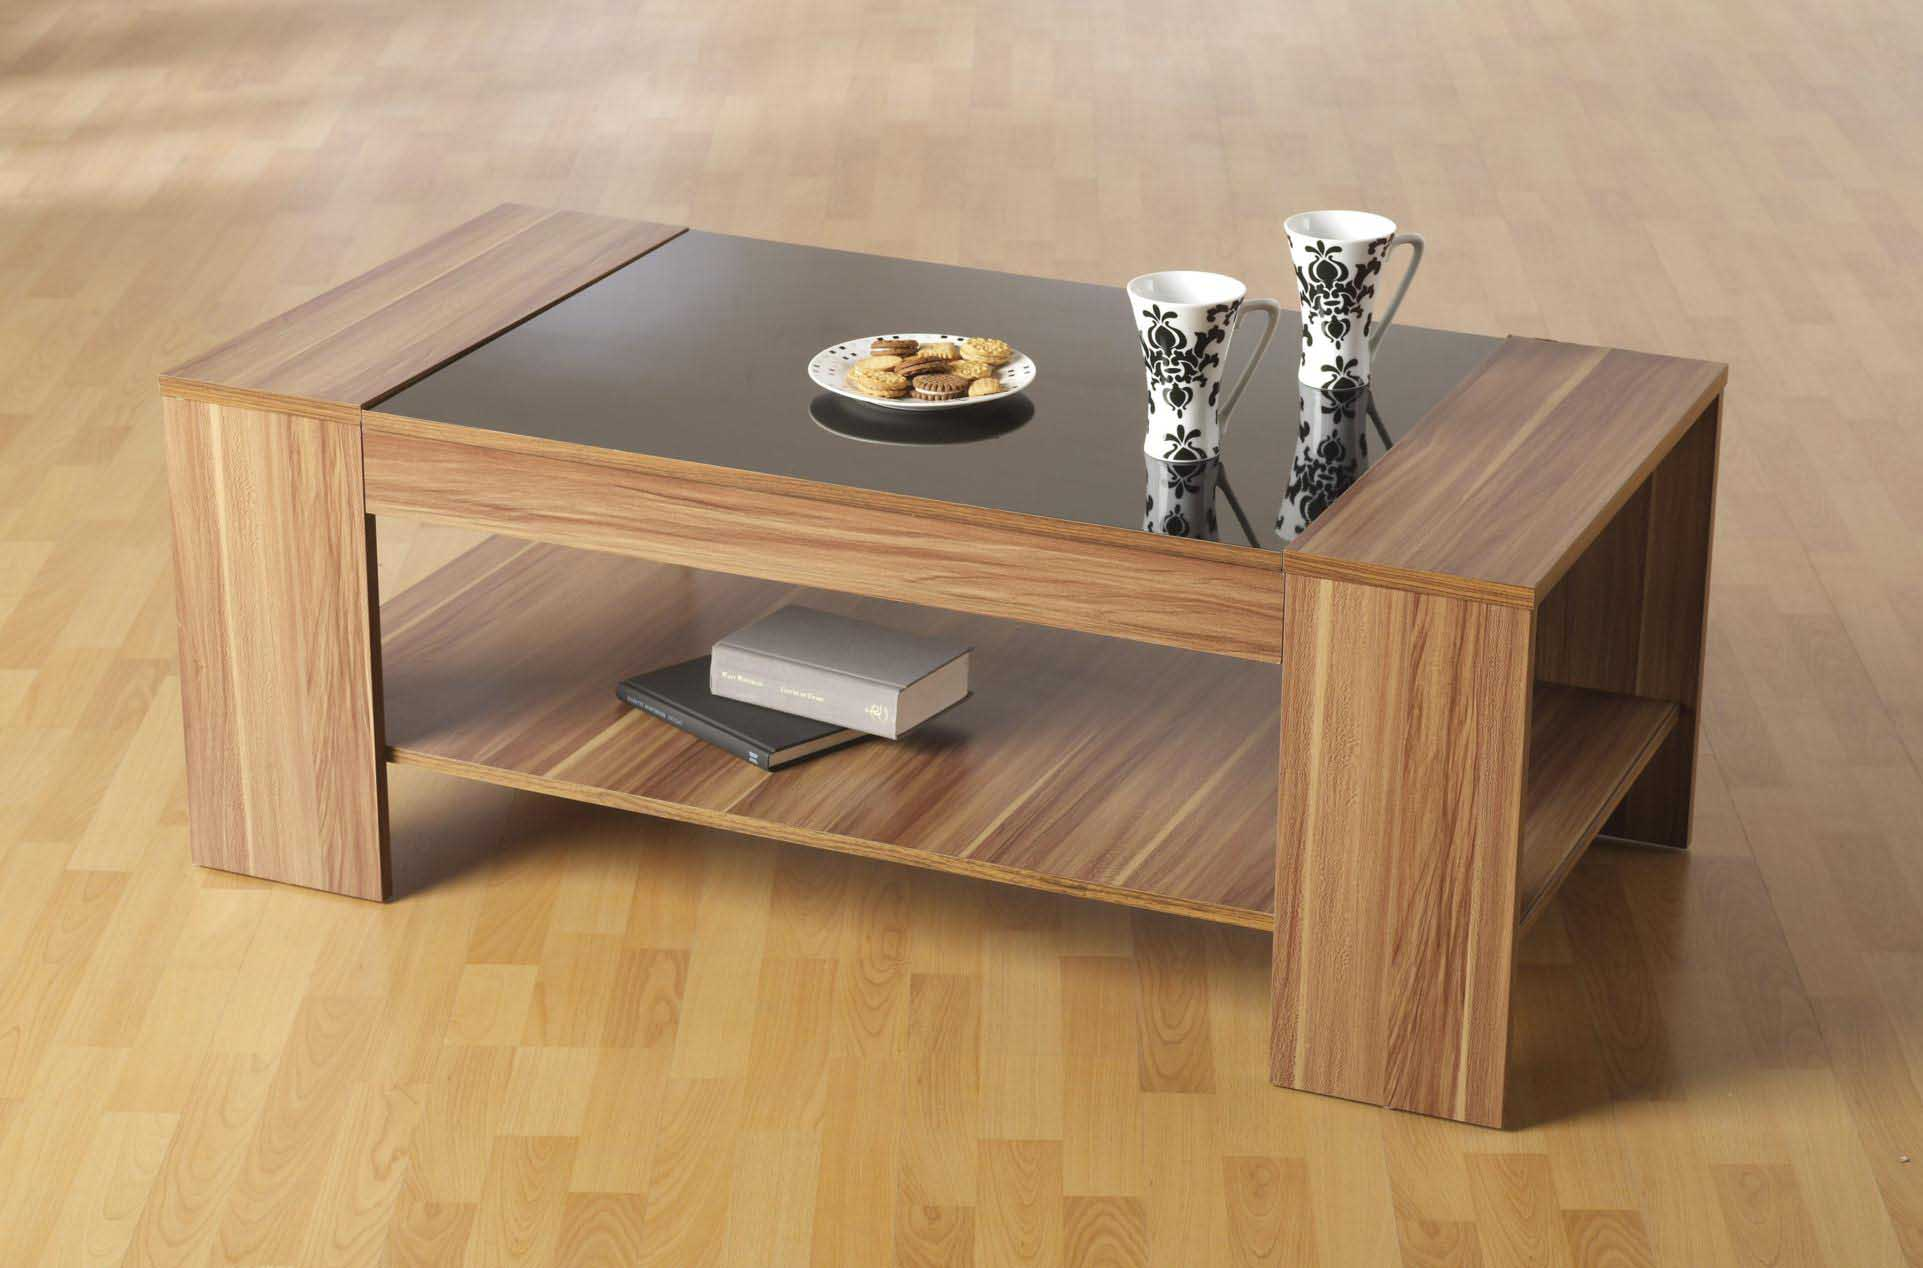 Wood With Glass Top Coffee Table Eton Solid Oak Living Room Lounge Furniture Storage Coffee Table With Drawers (Image 4 of 10)